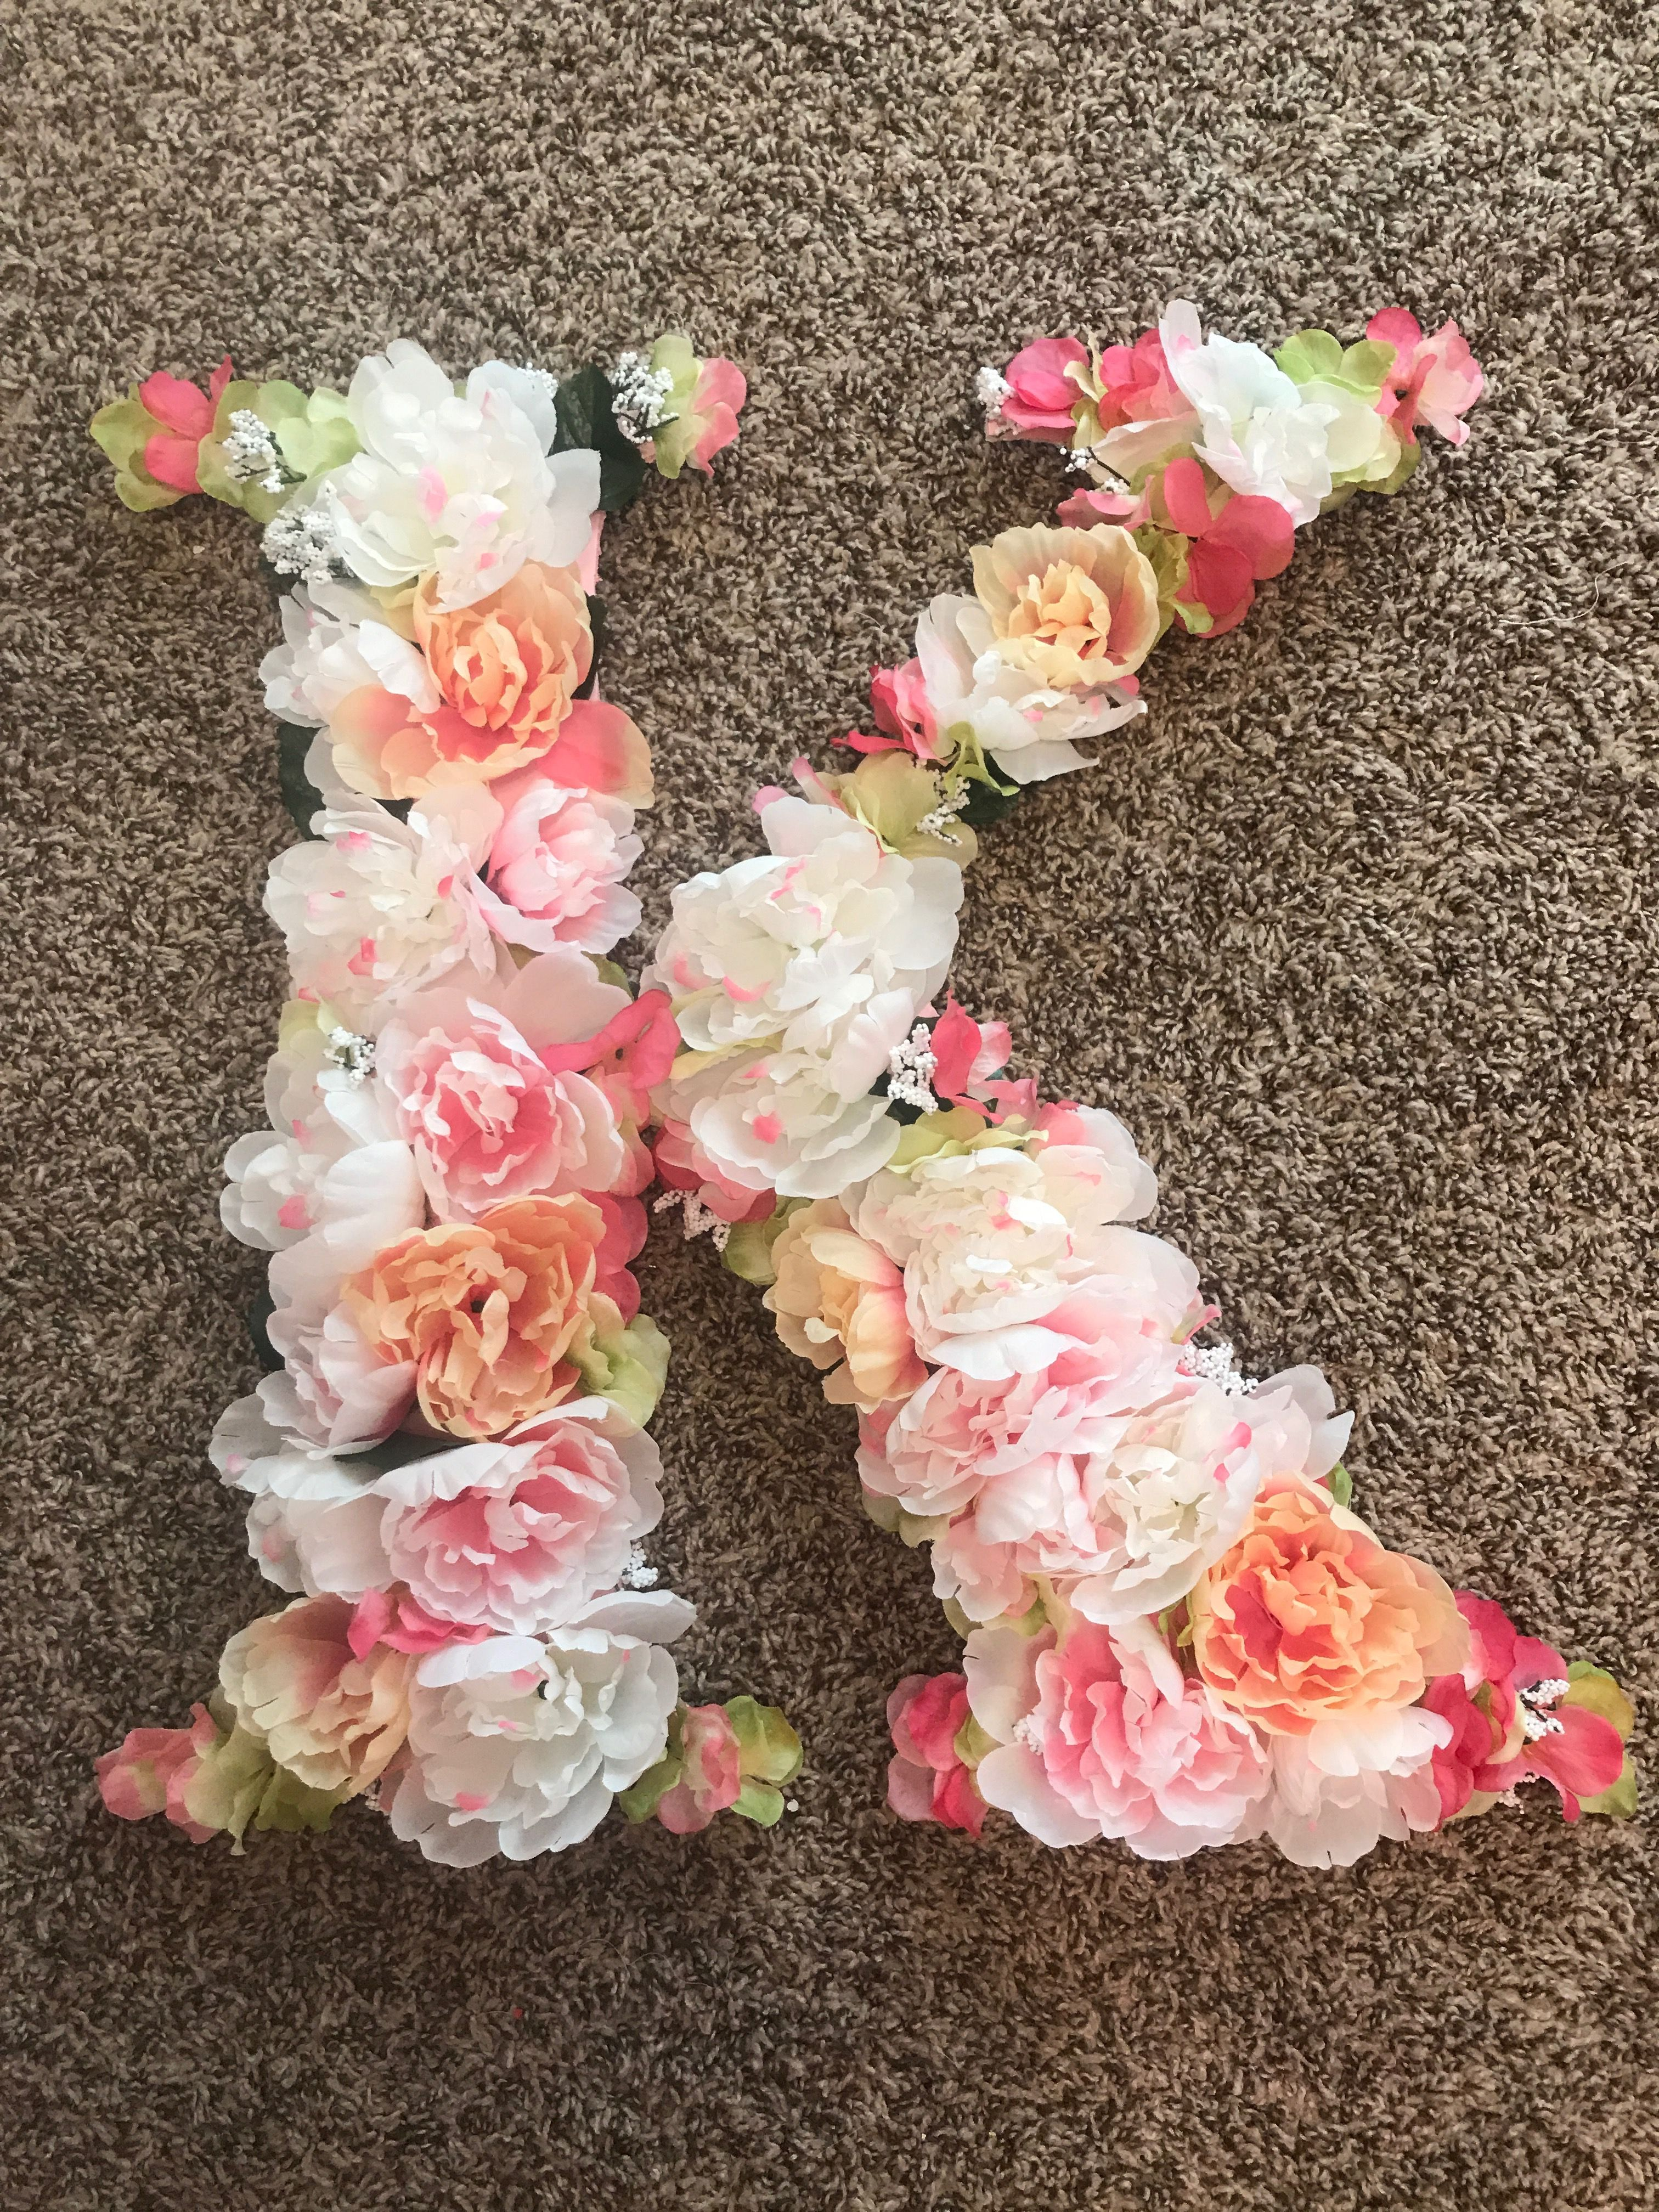 Floral Letter Using Foam Board As Backing And Dollar Tree Flowers Floral Foam Letters Floral Foam Diy Flowers